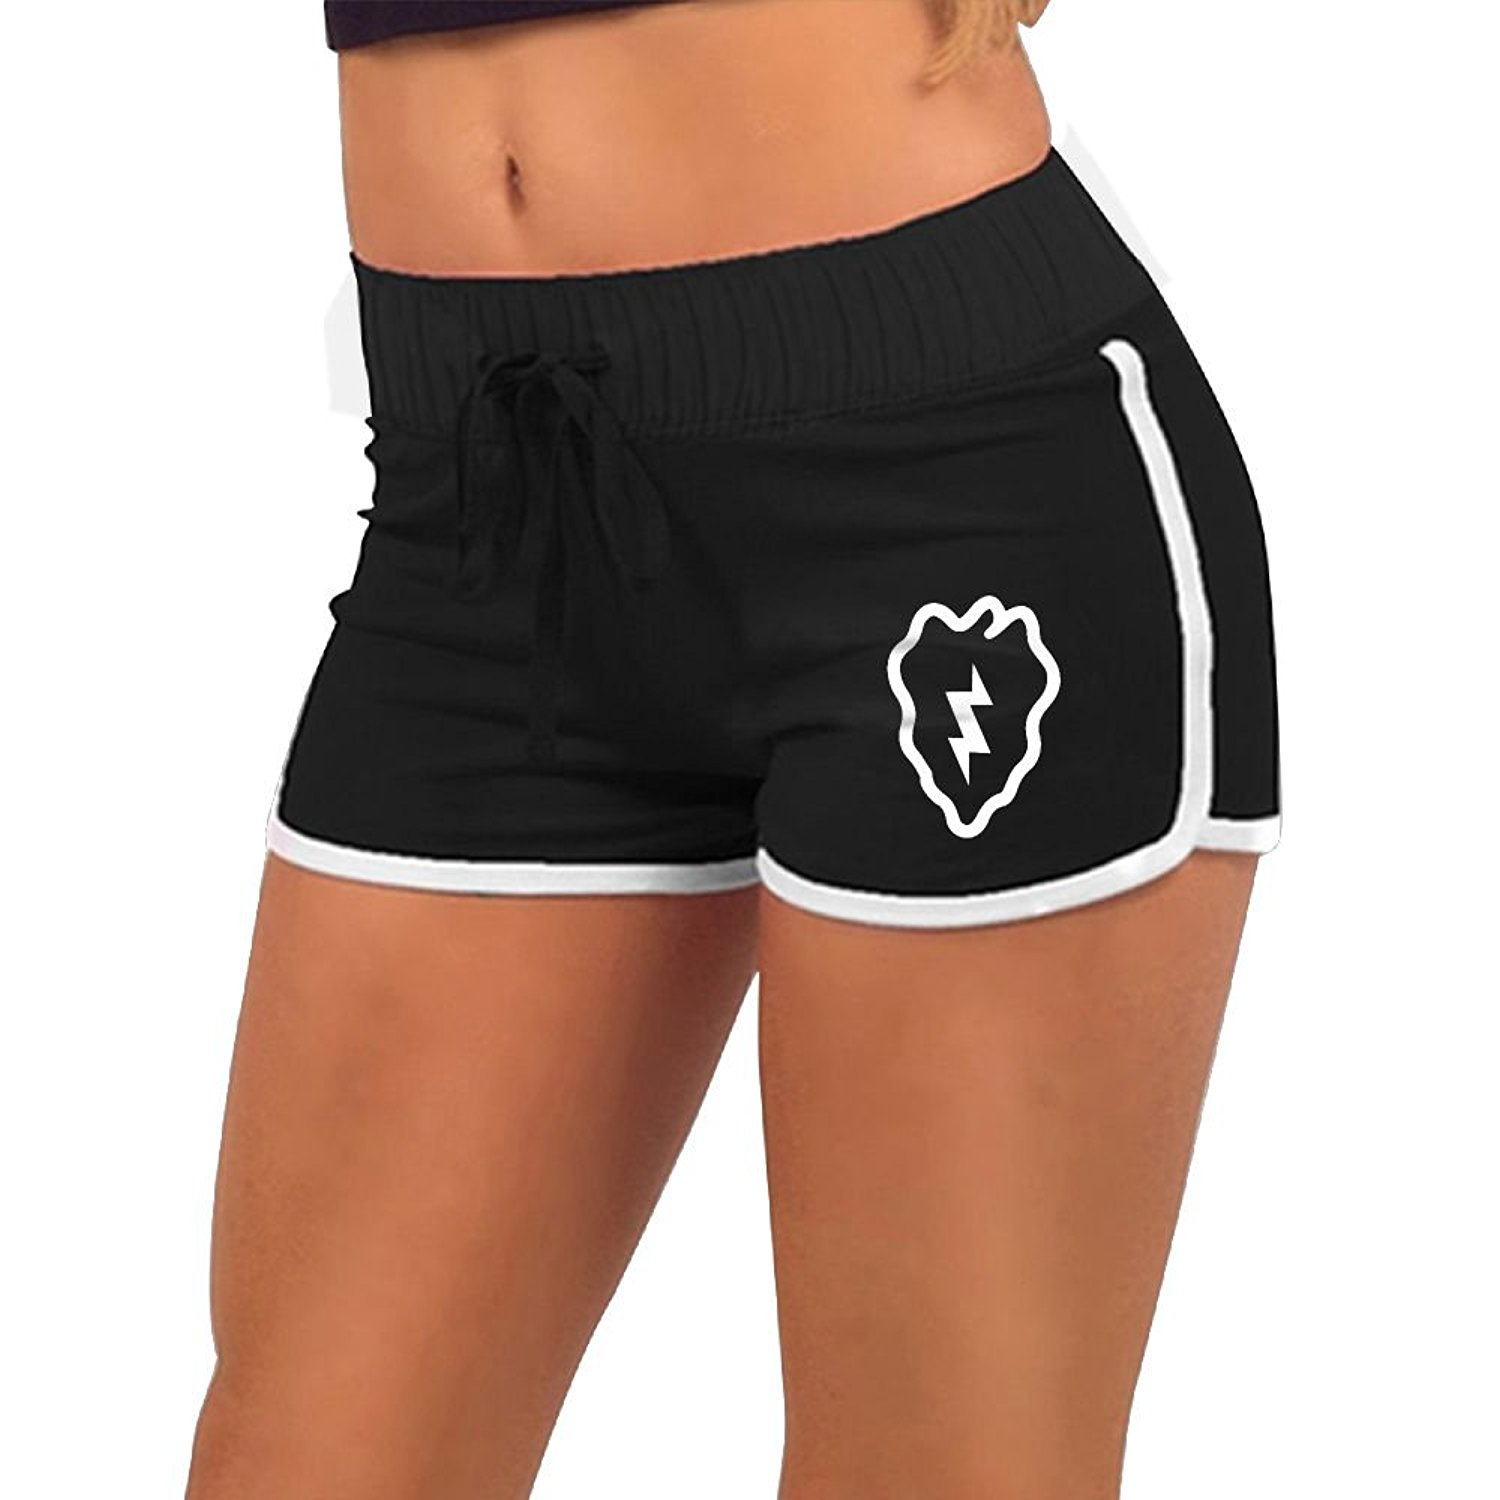 KENYYIOP us Army Women's Yoga Shorts,Workout Shorts,Summer Pants,Running Shorts,Drawstring Waist Workout Shorts